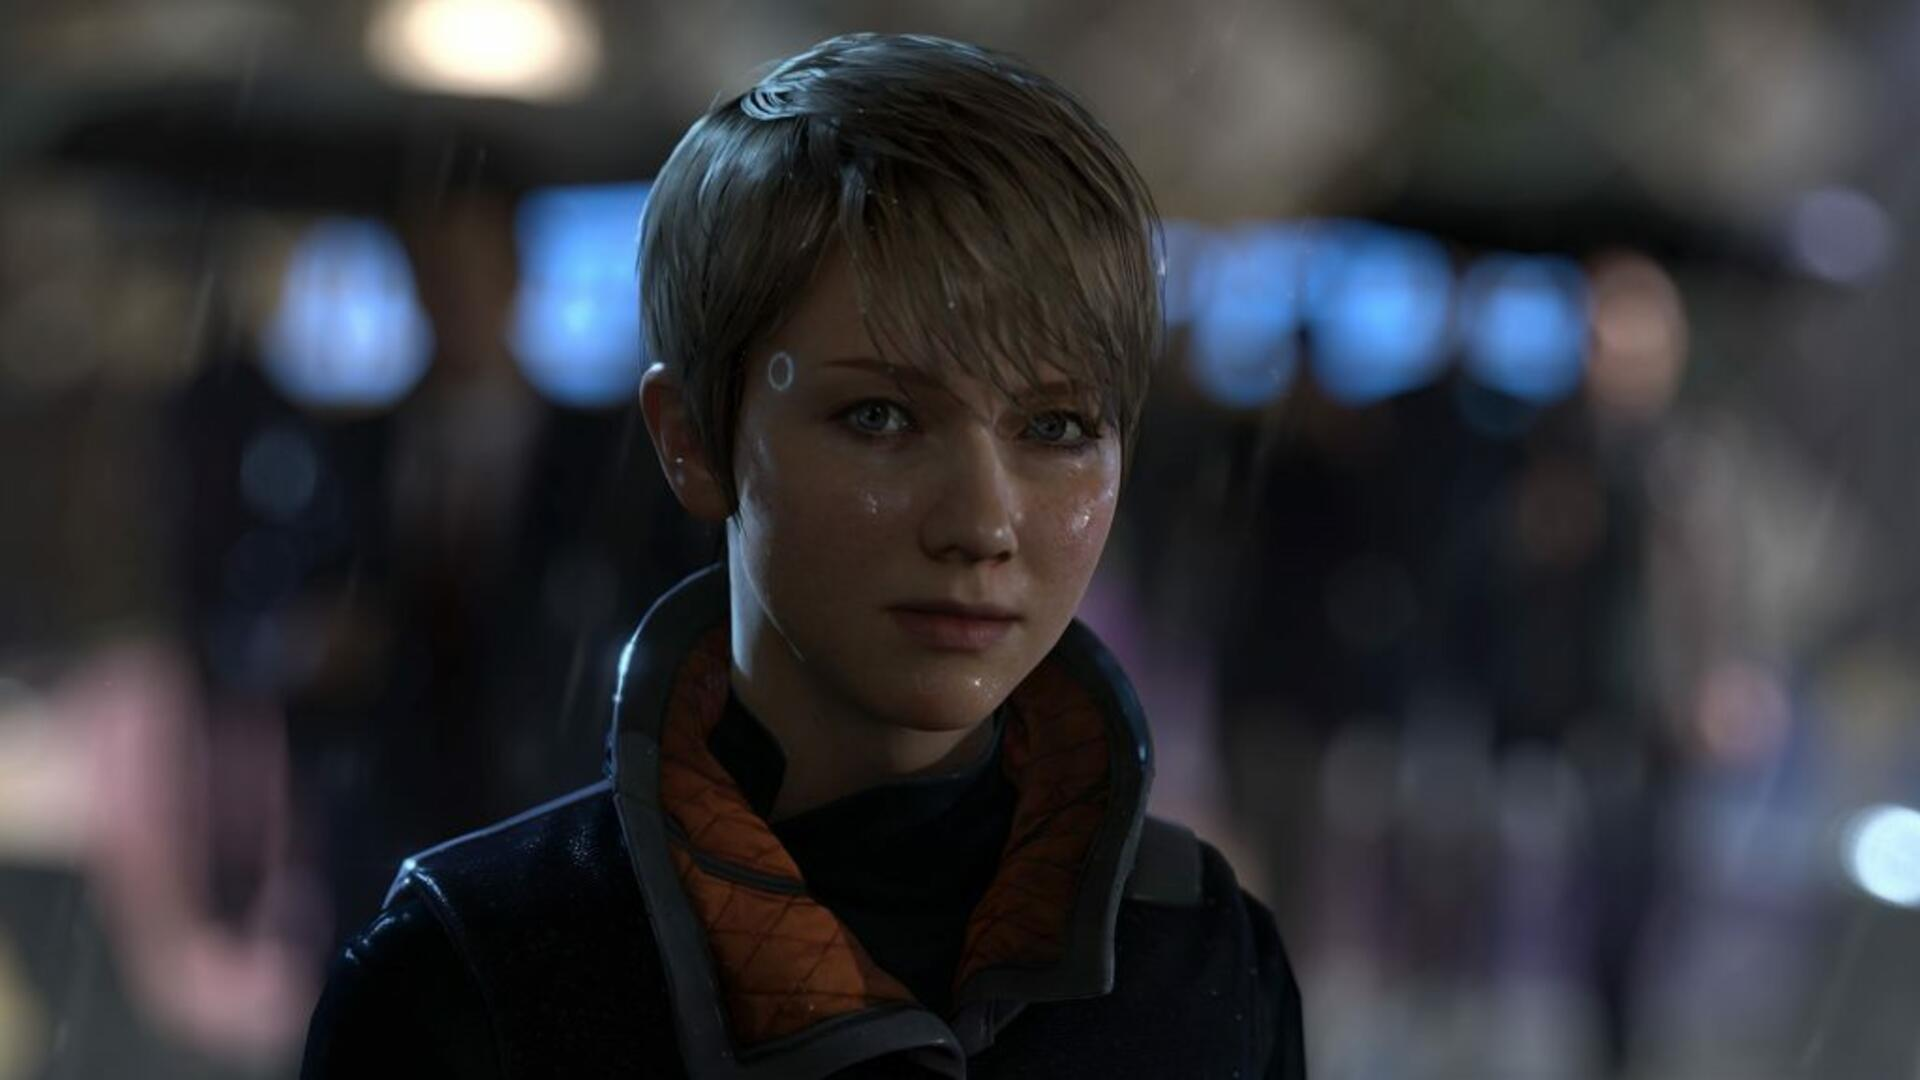 Detroit: Become Human Release Date, Gameplay Analysis, Characters, Narrative Choices - Everything We Know